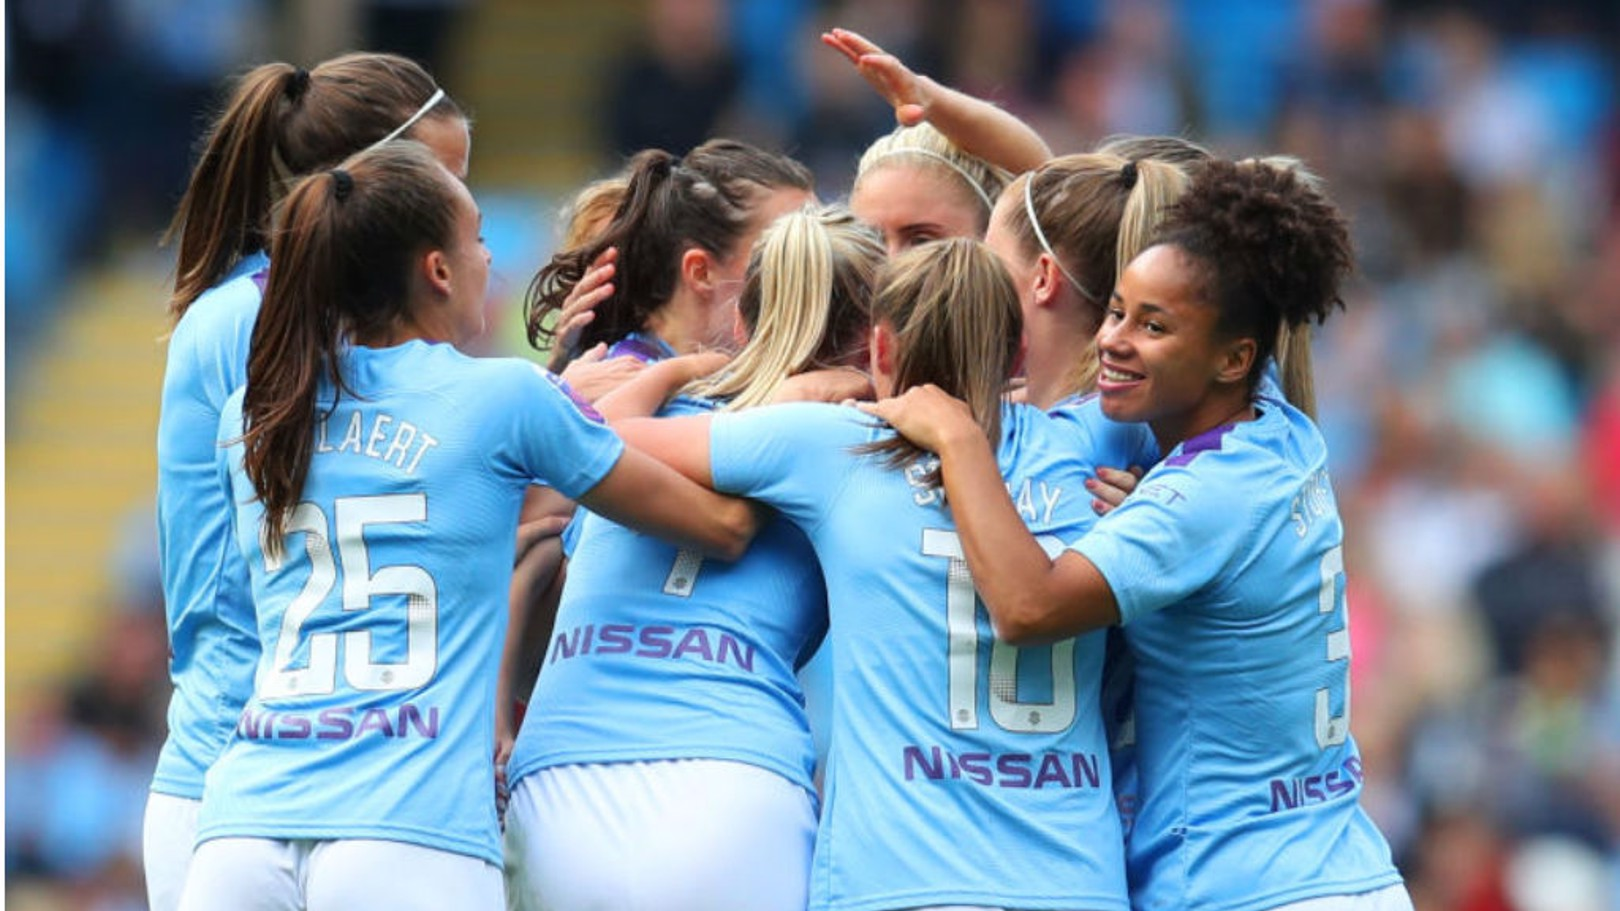 CONFIRMED: The FA has today announced plans for the first-ever Women's Football Weekend